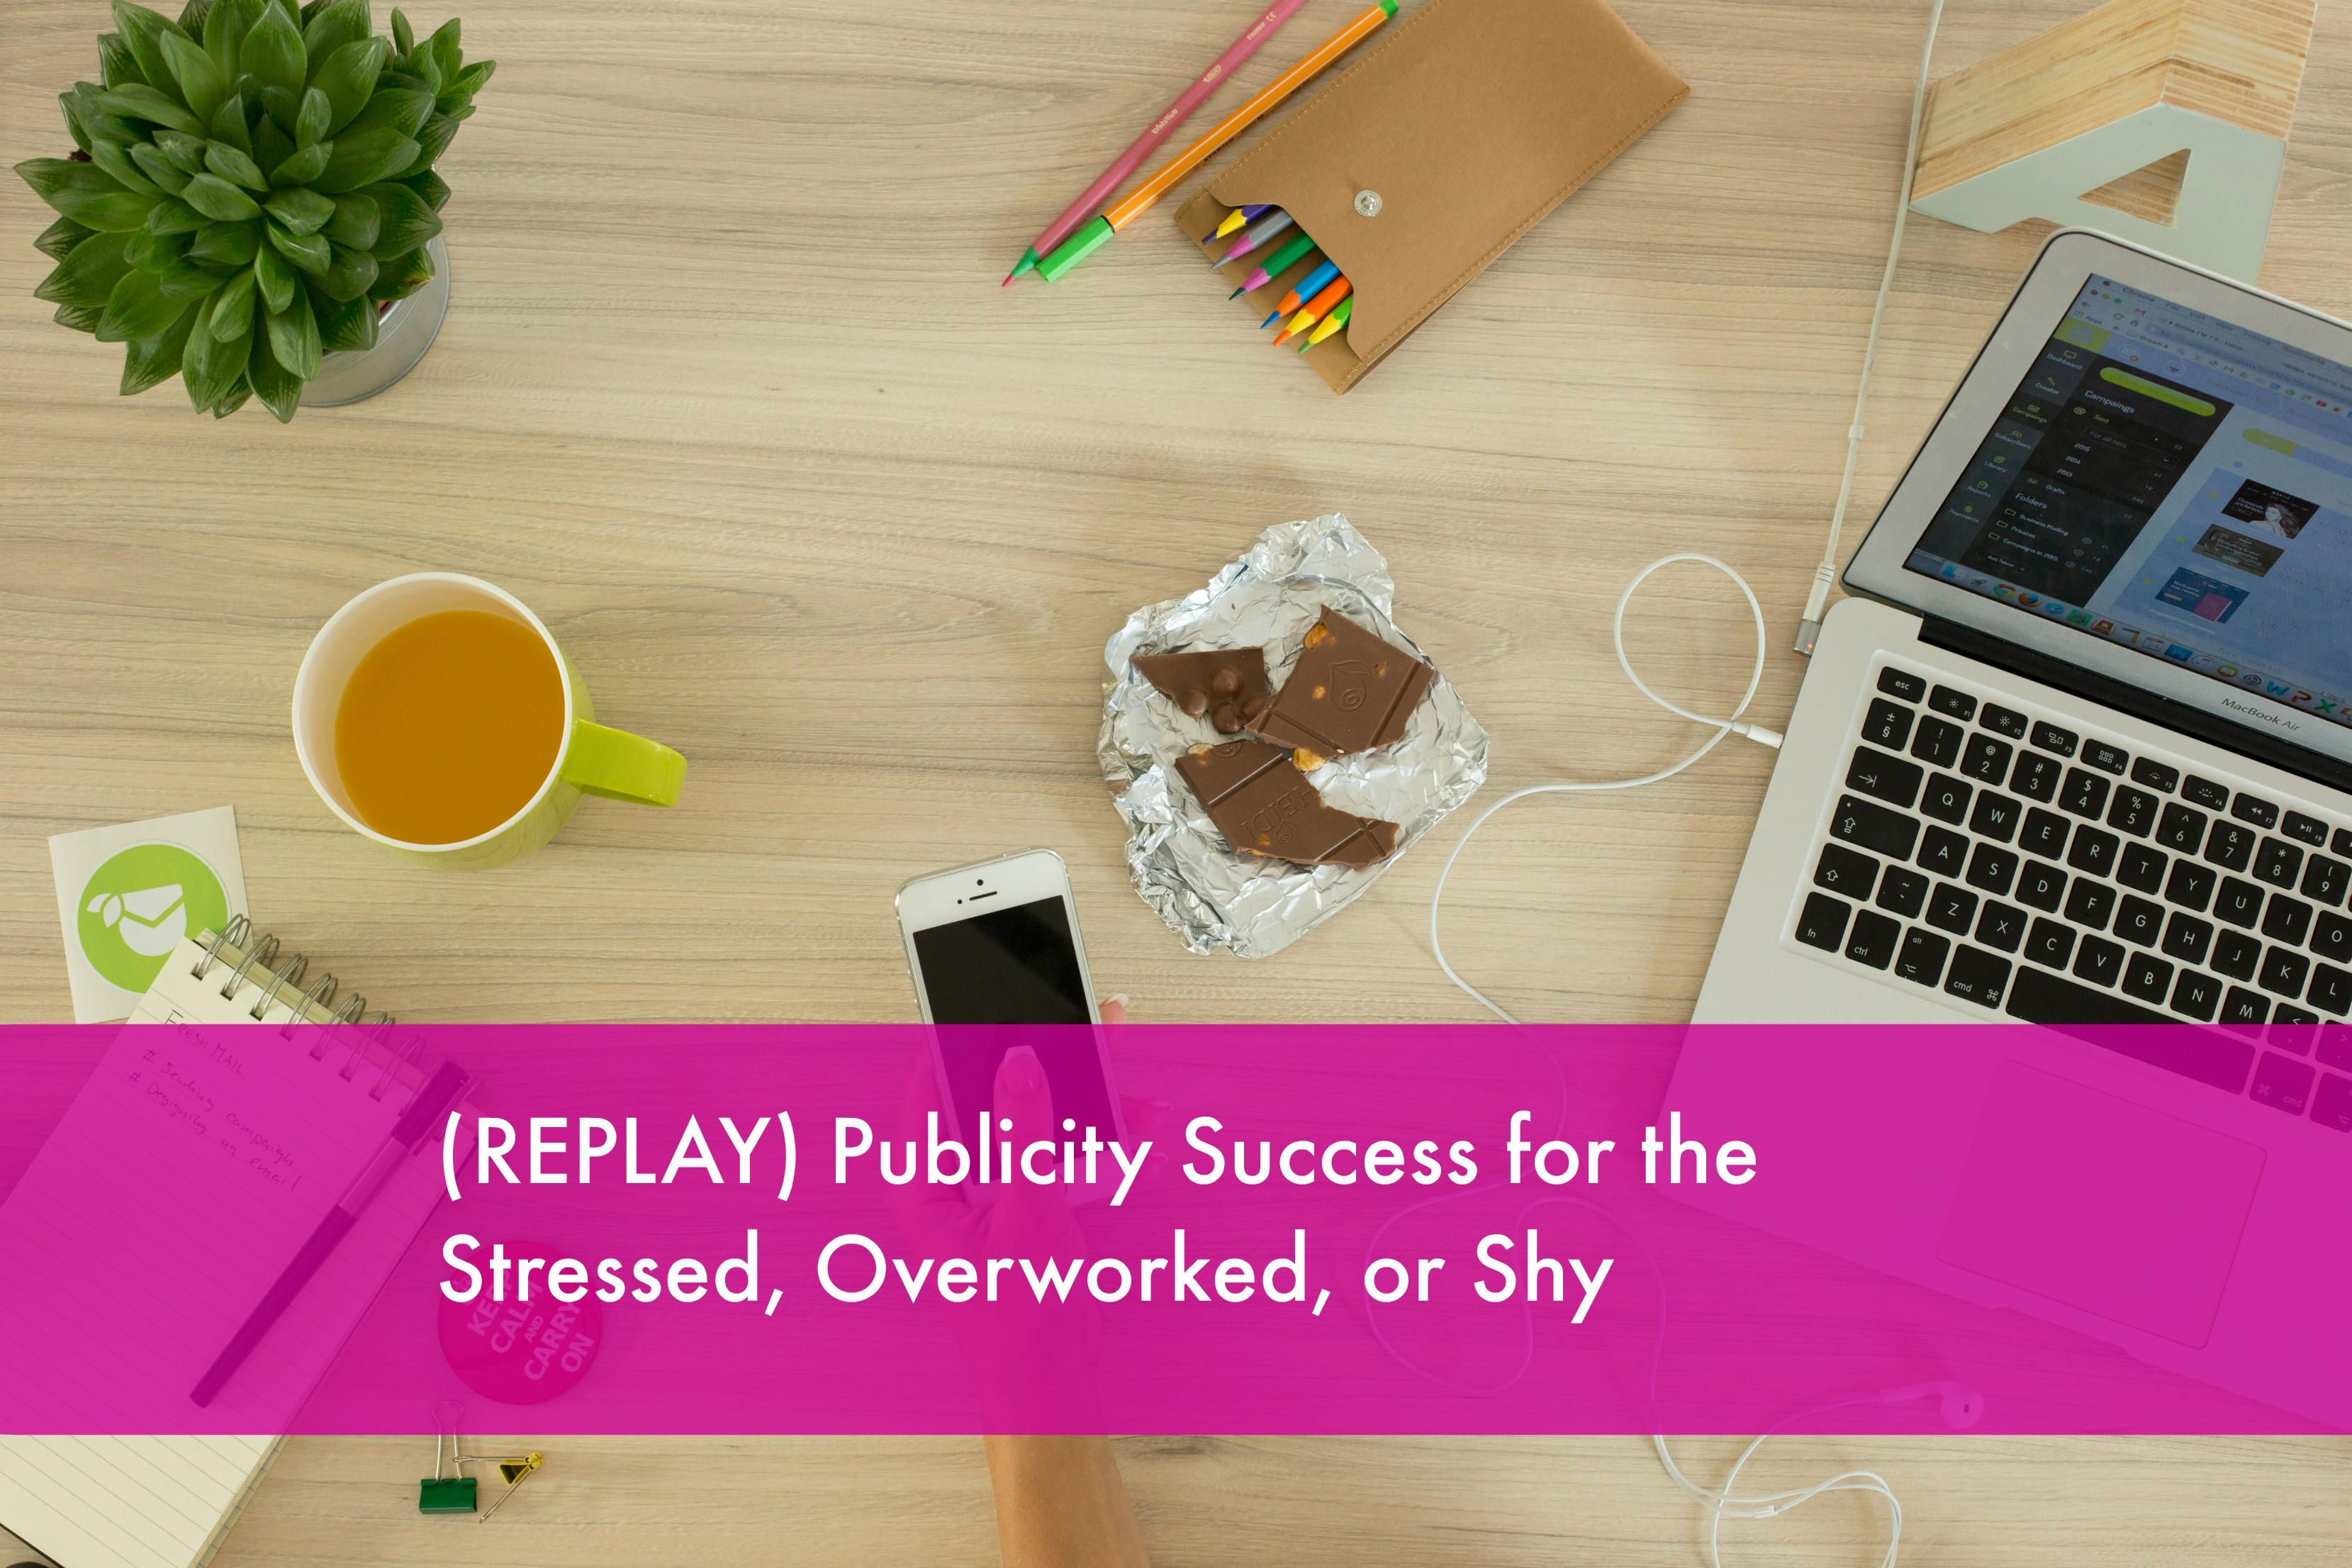 Publicity Success for the Stressed